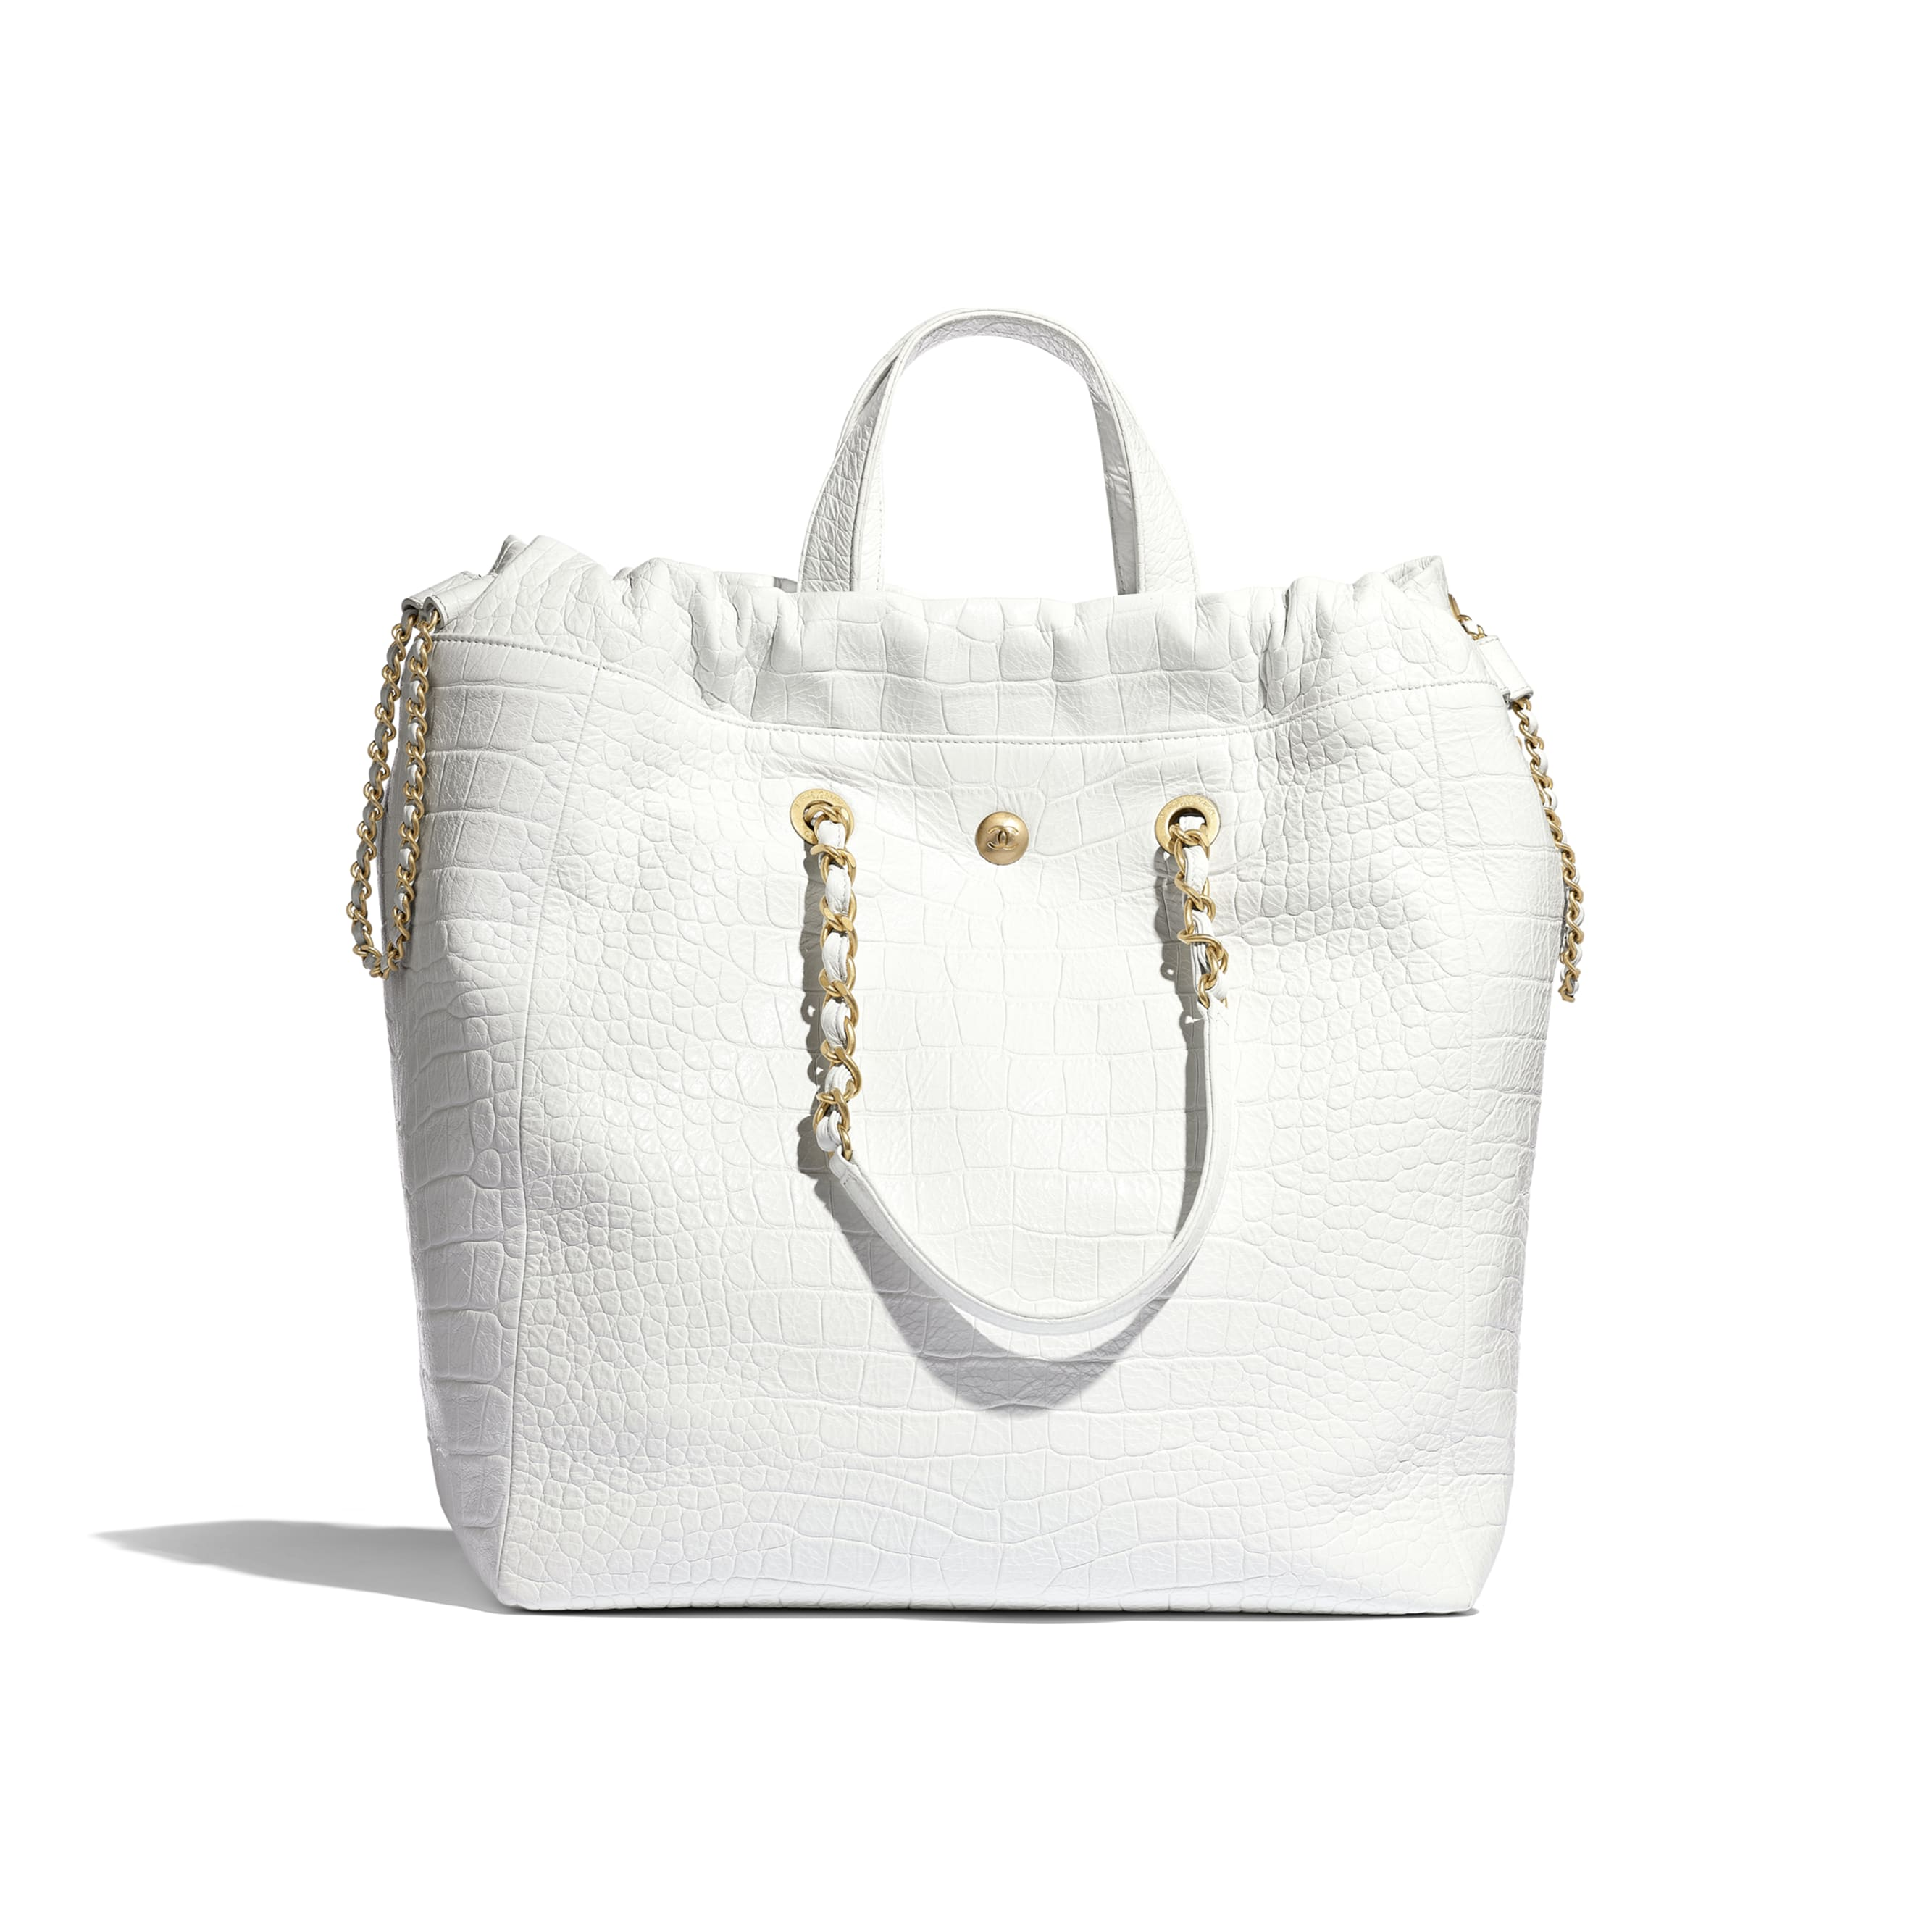 Large Shopping Bag - White - Crocodile Embossed Printed Leather & Gold-Tone Metal - Alternative view - see standard sized version